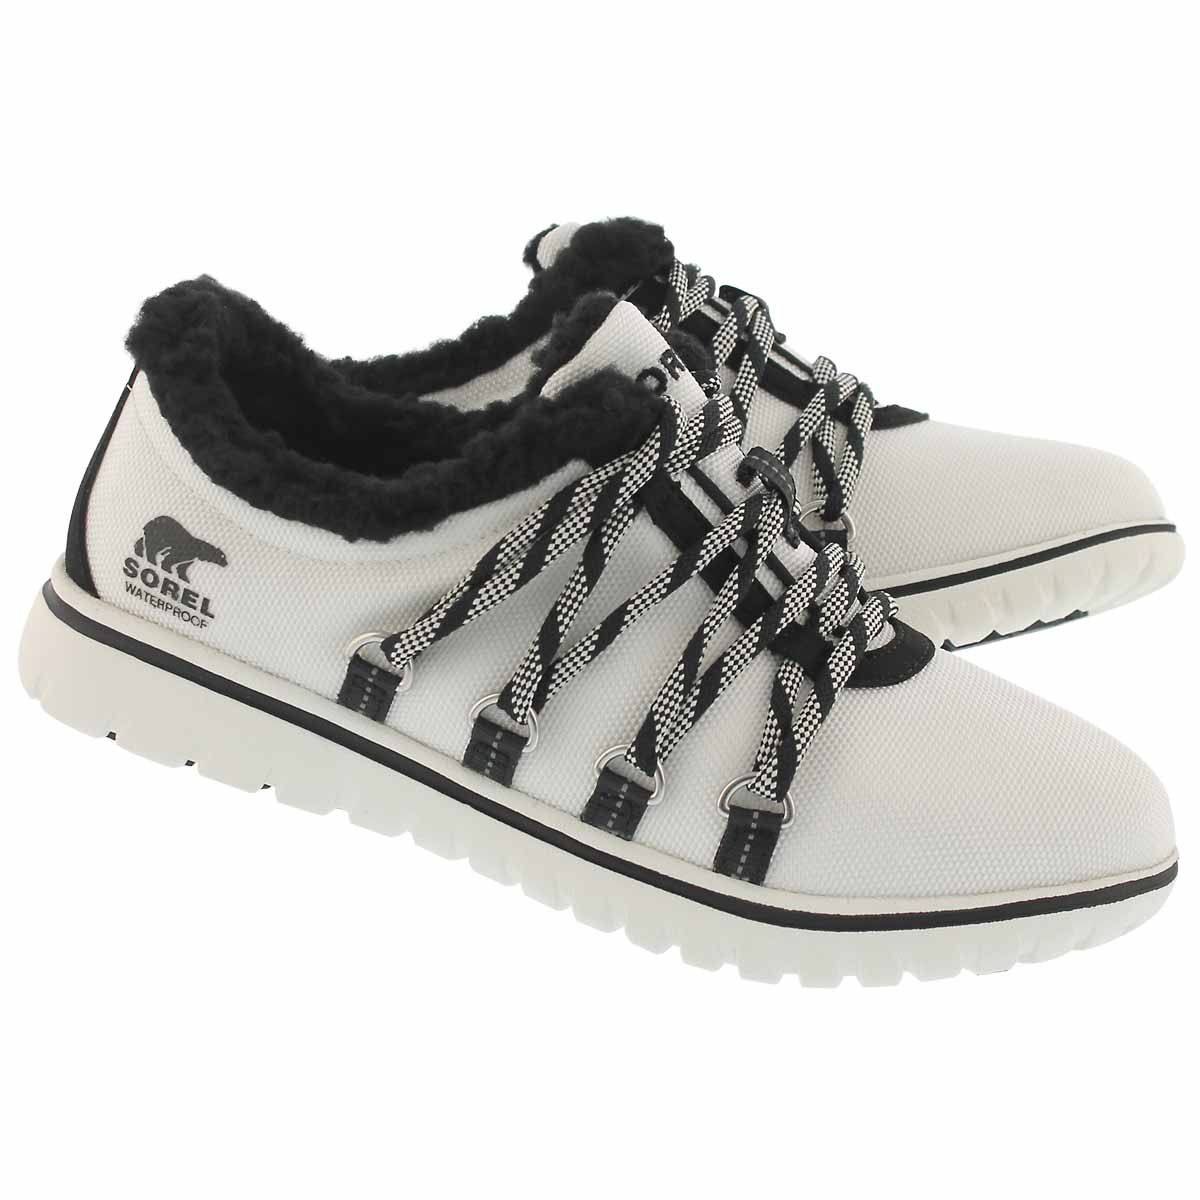 Lds CozyGo sea salt wp insulated sneaker